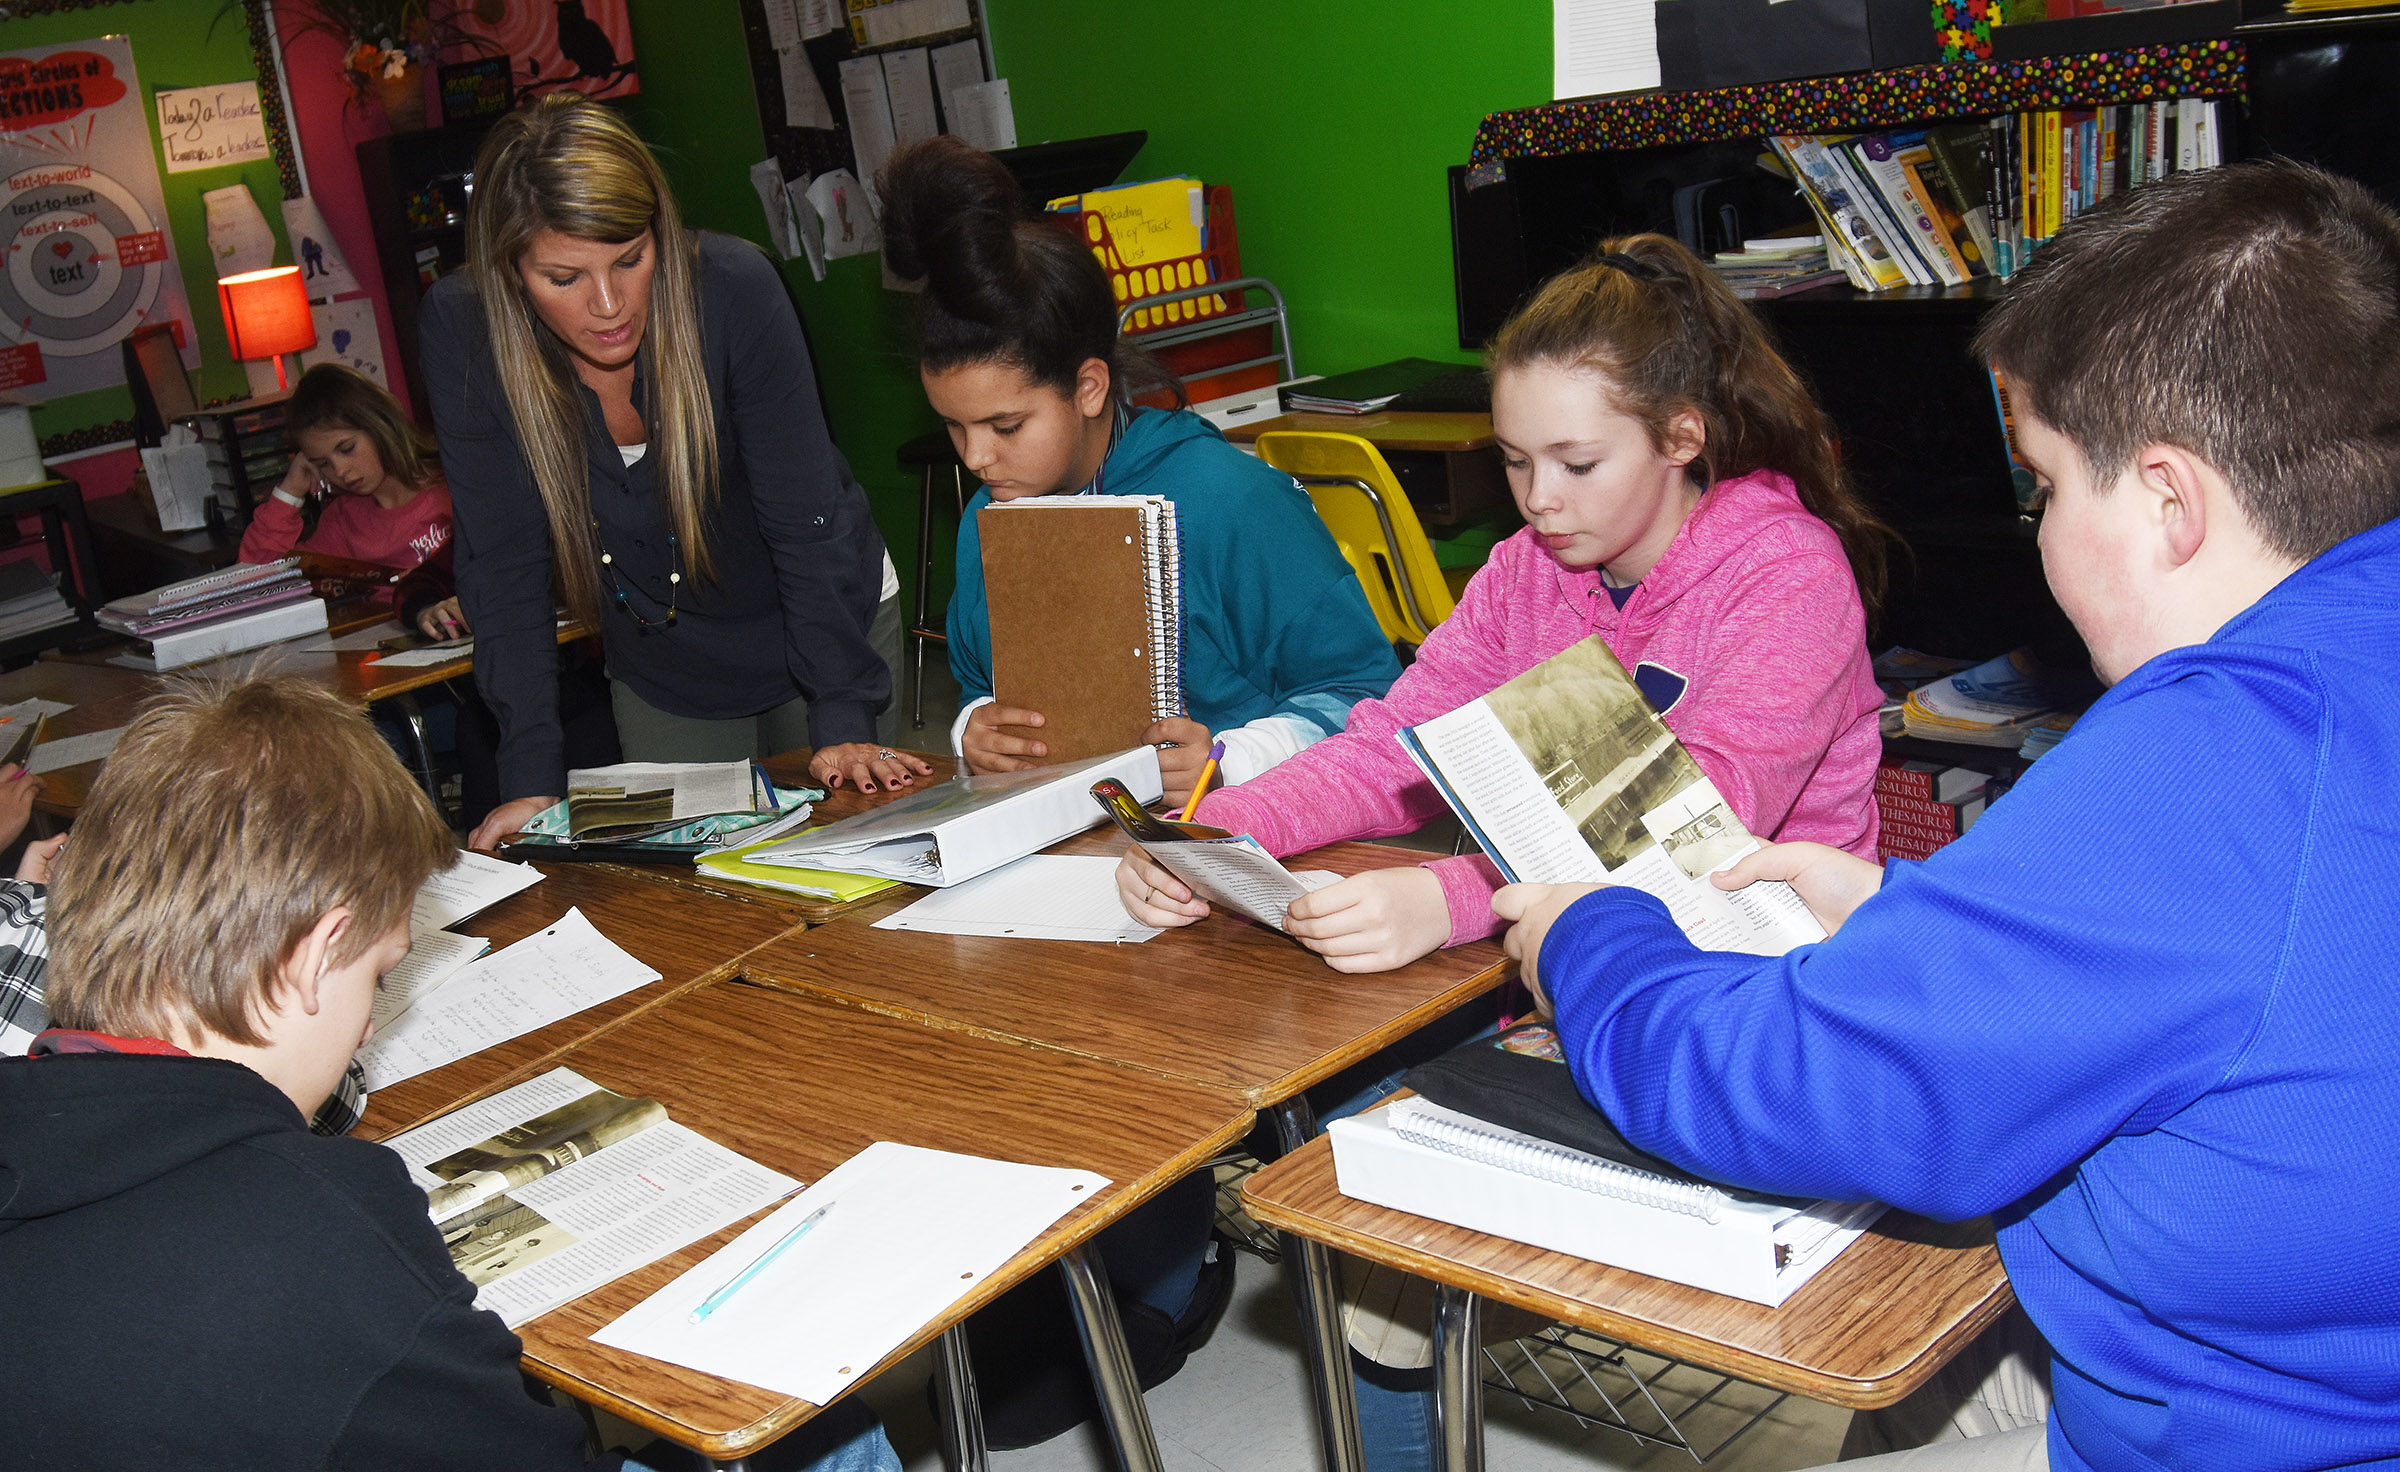 CMS teacher Andrea Gribbins talks with, from left, sixth-graders Gracie Taylor, CheyAnn Edwards and Luke McDonald about how to find details in a story that support the main idea.